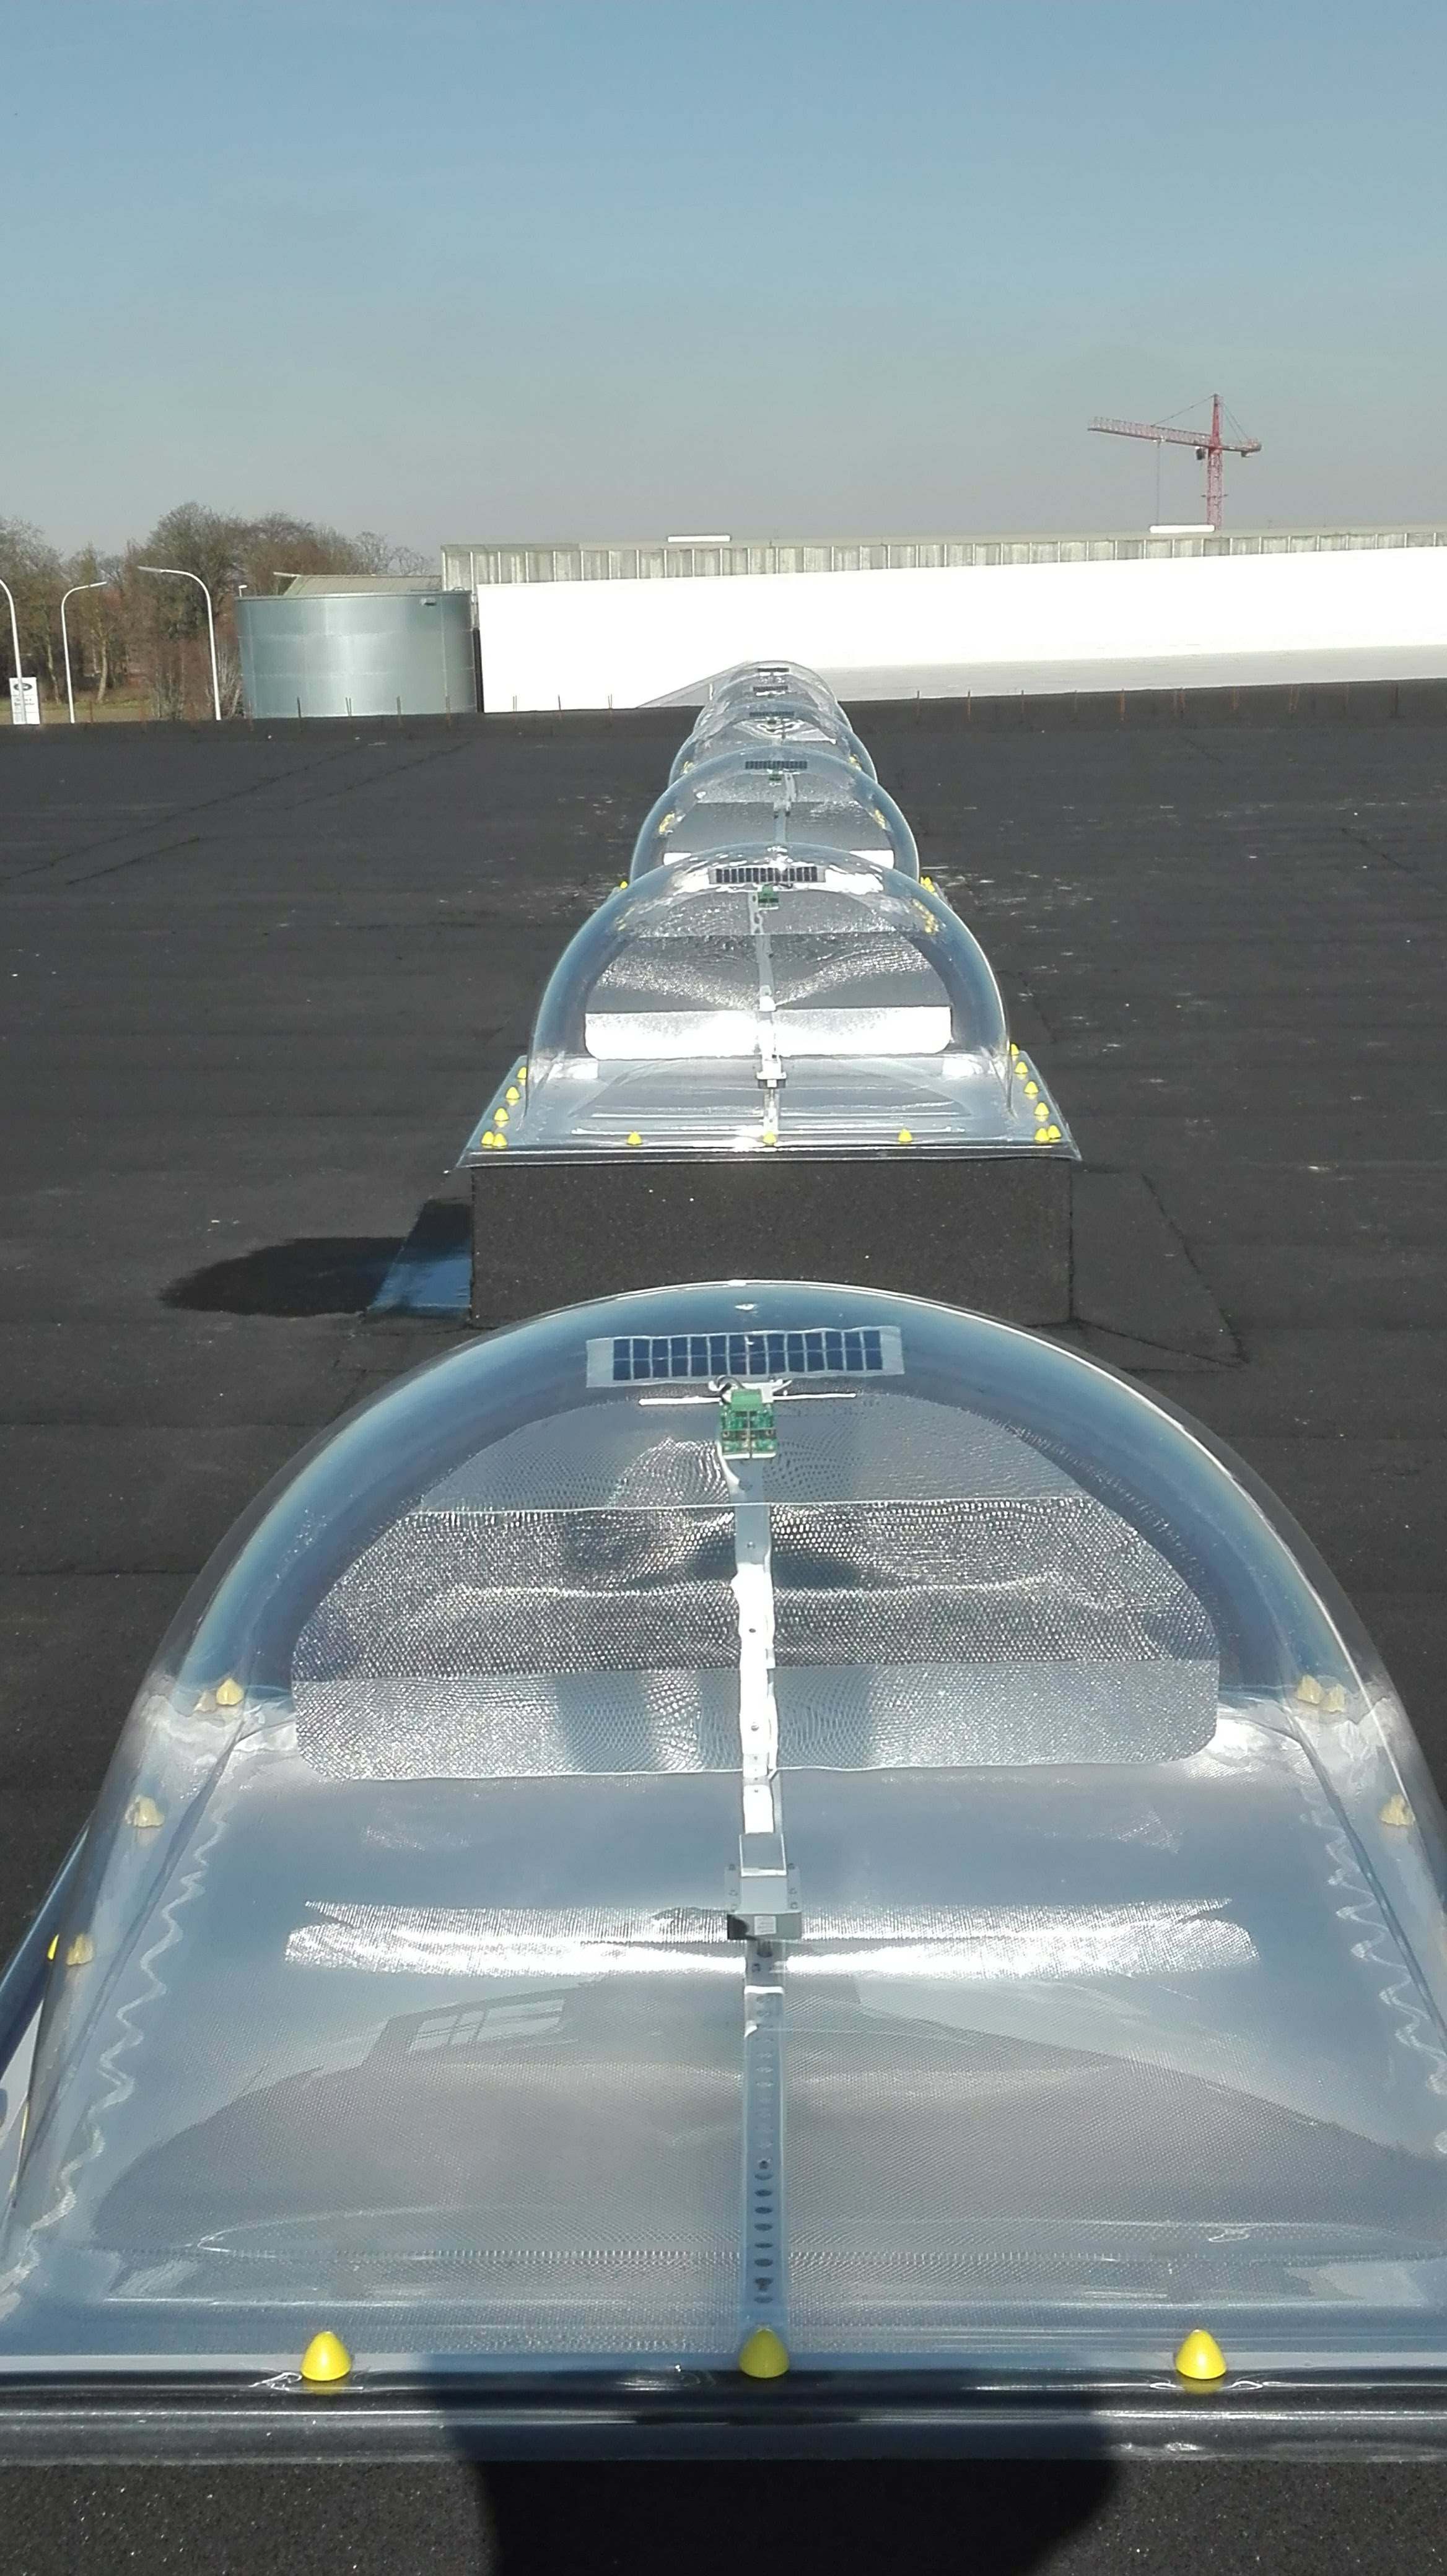 skylight-dome-bmw-dejonckheere-03